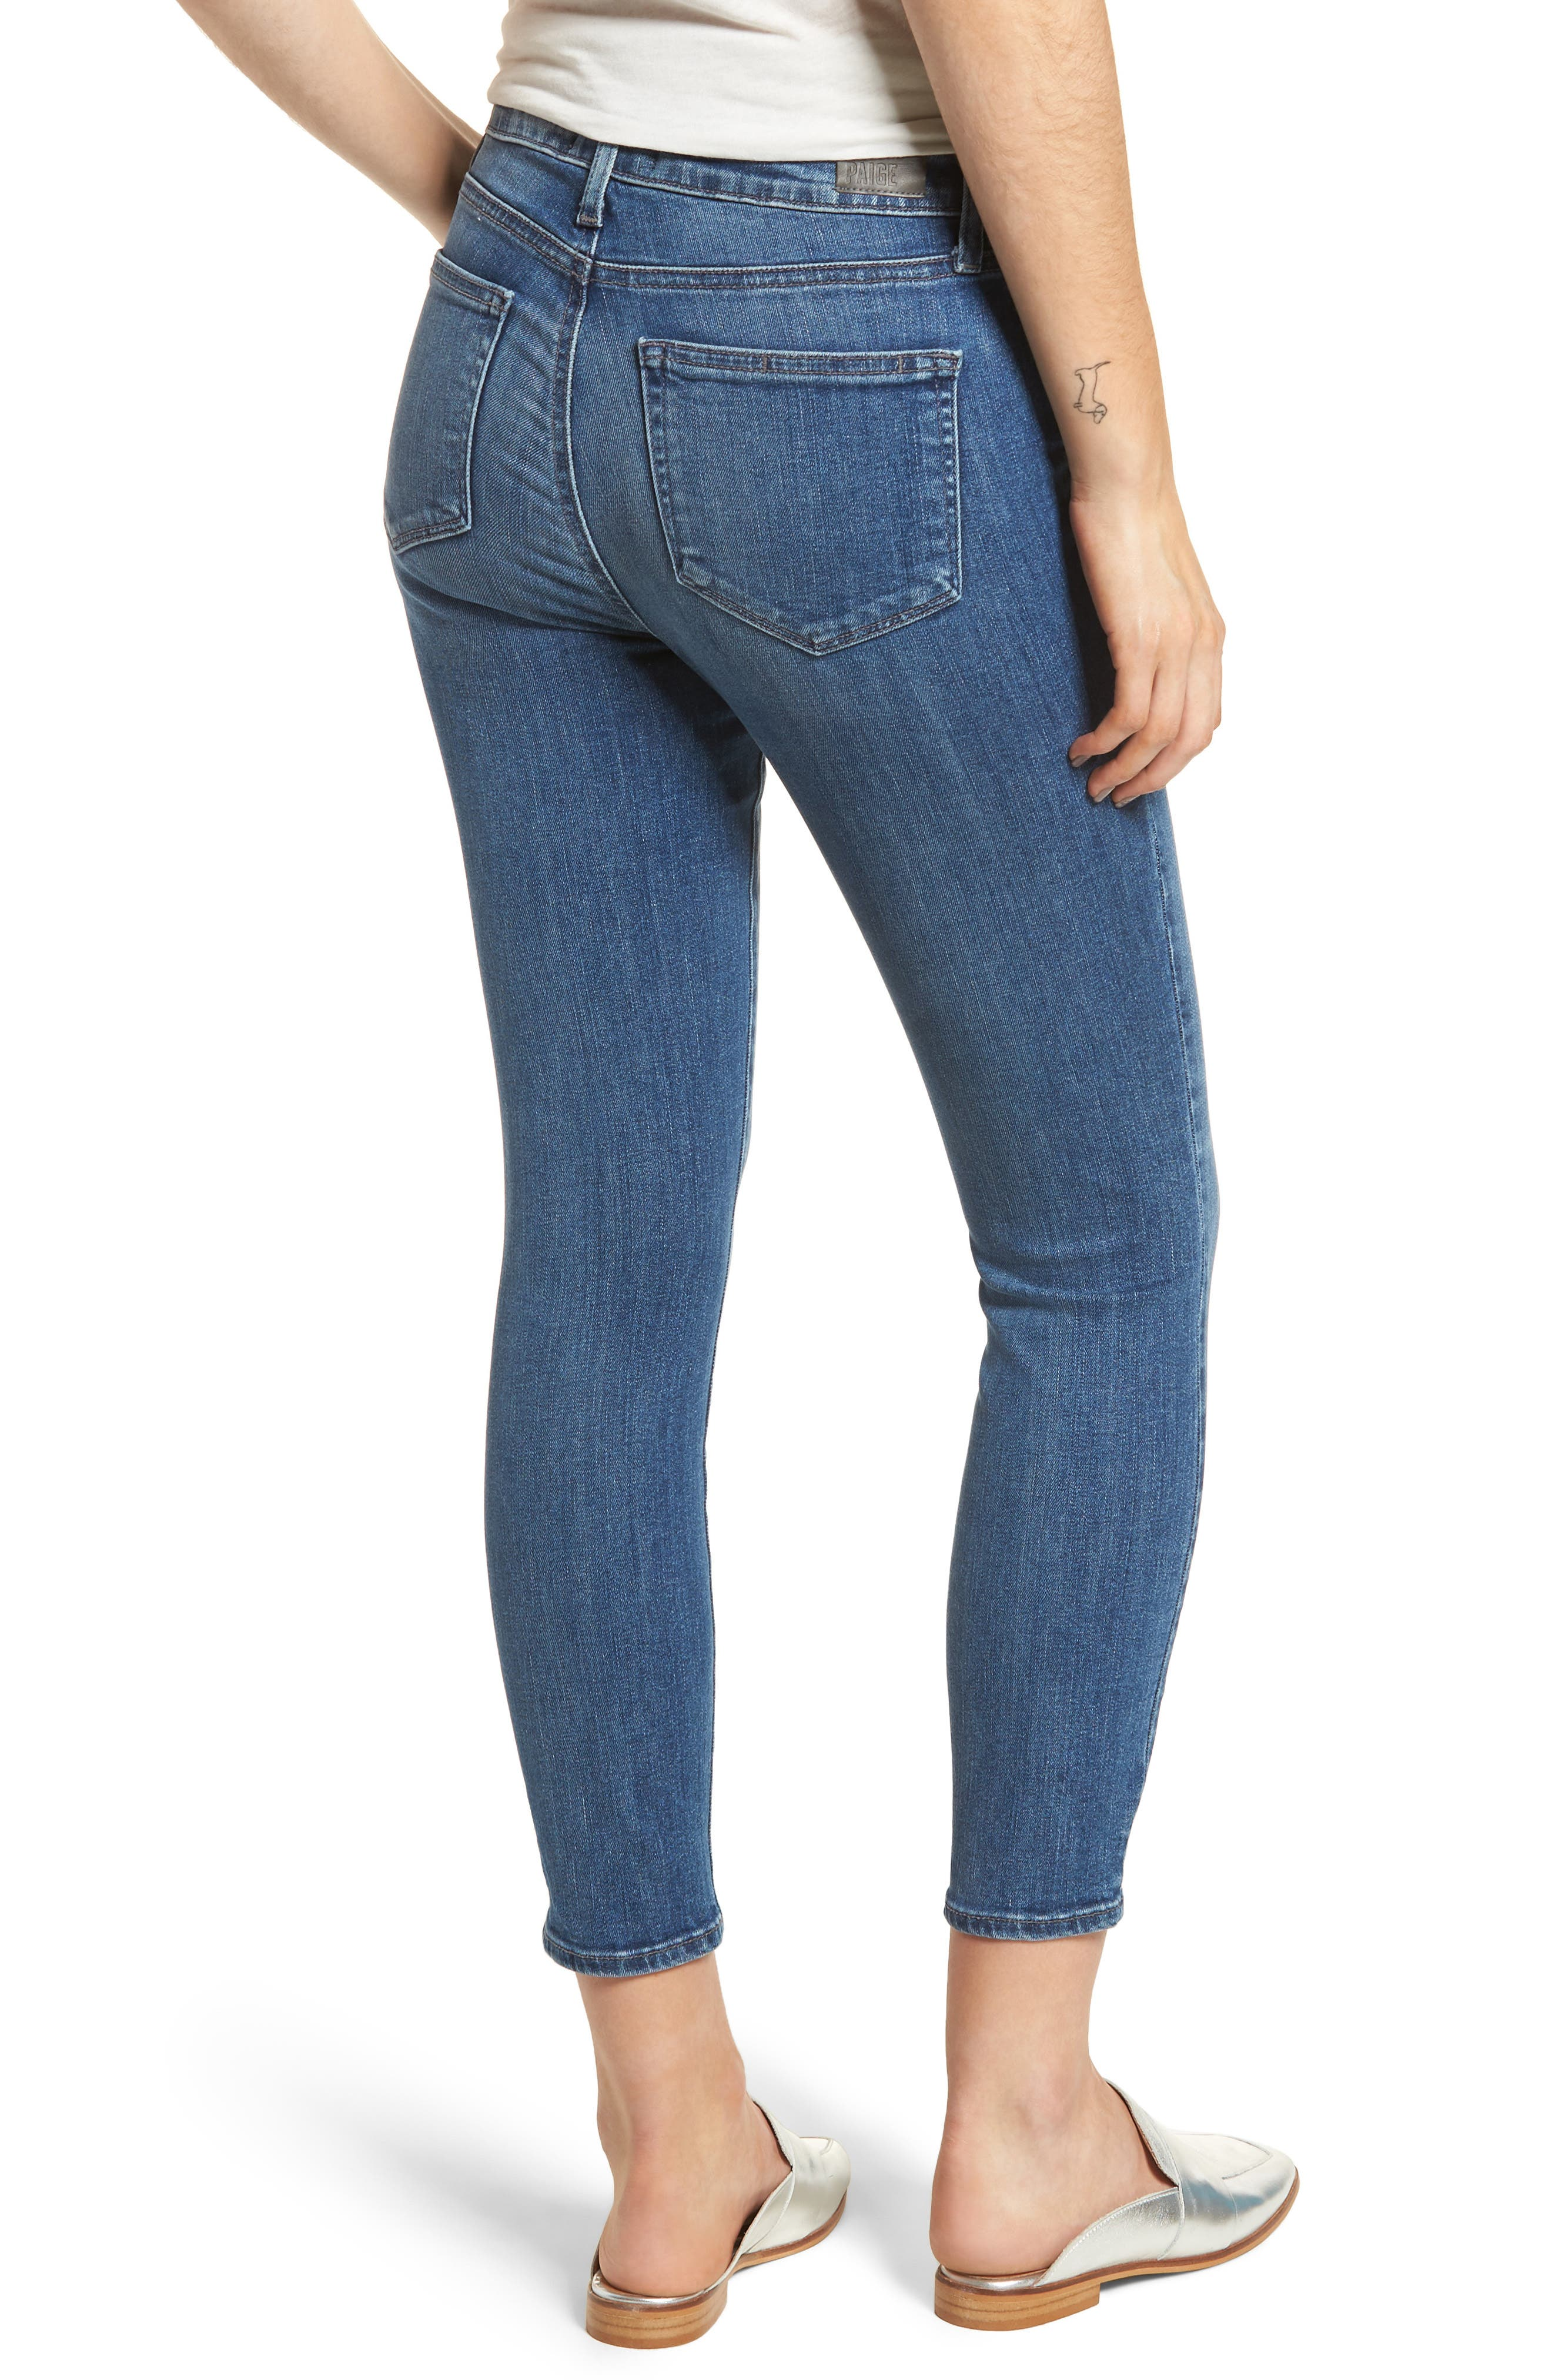 Hoxton High Waist Ankle Skinny Jeans,                             Alternate thumbnail 2, color,                             Bloomfield